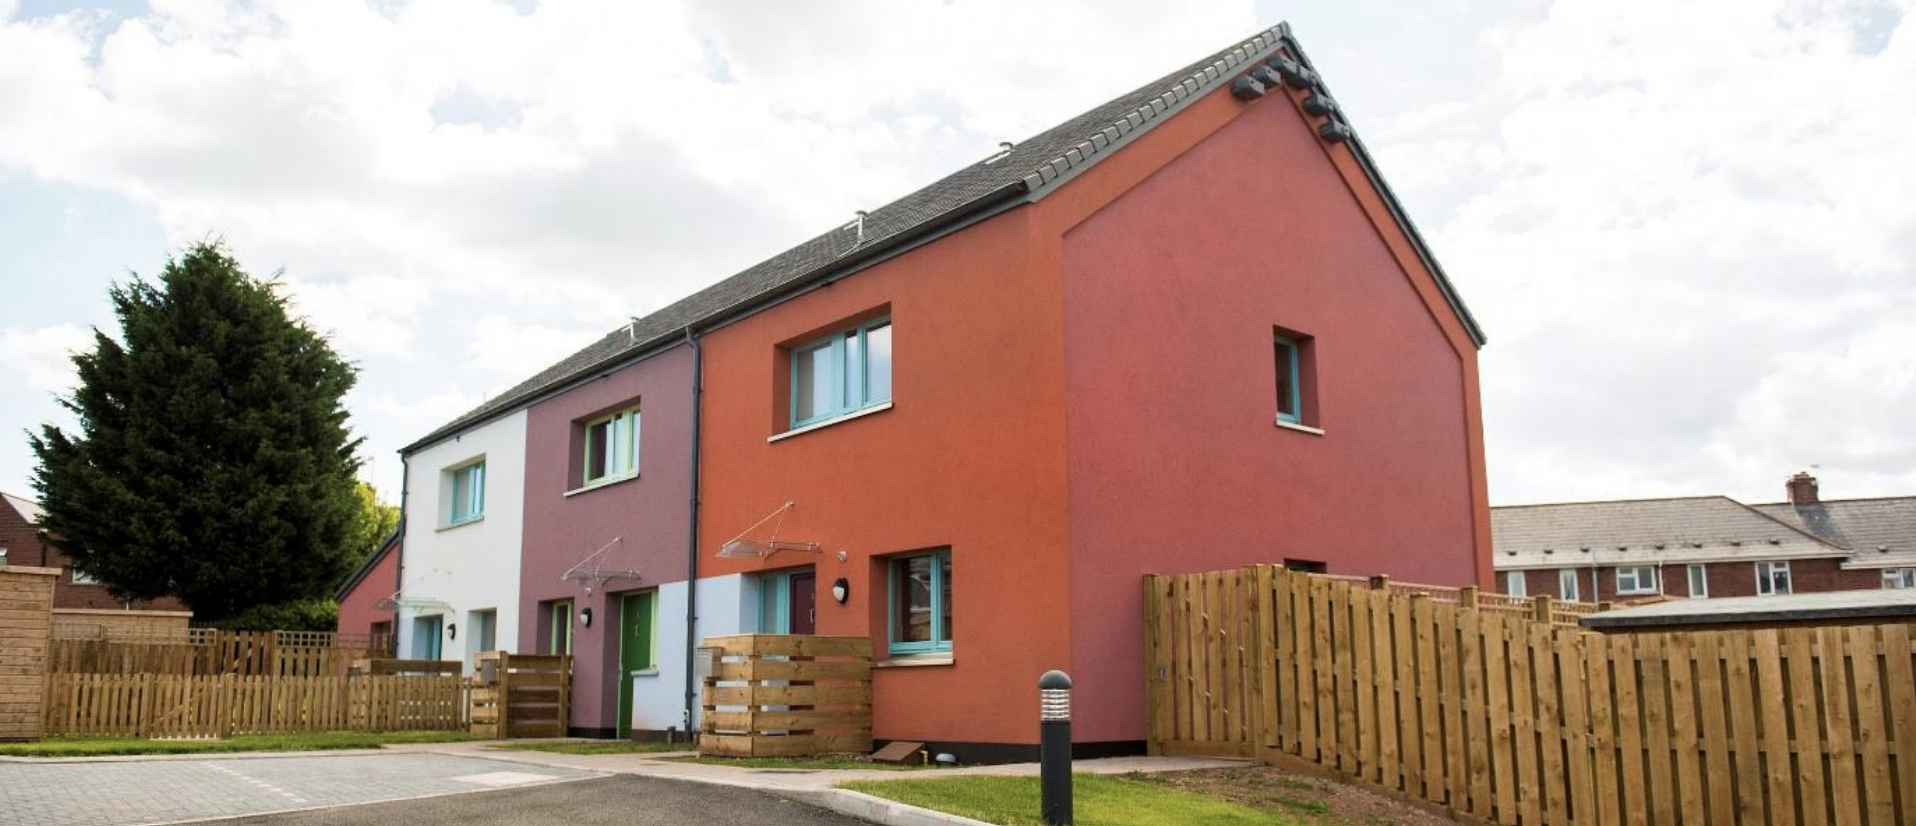 Passivhaus housing in Exeter